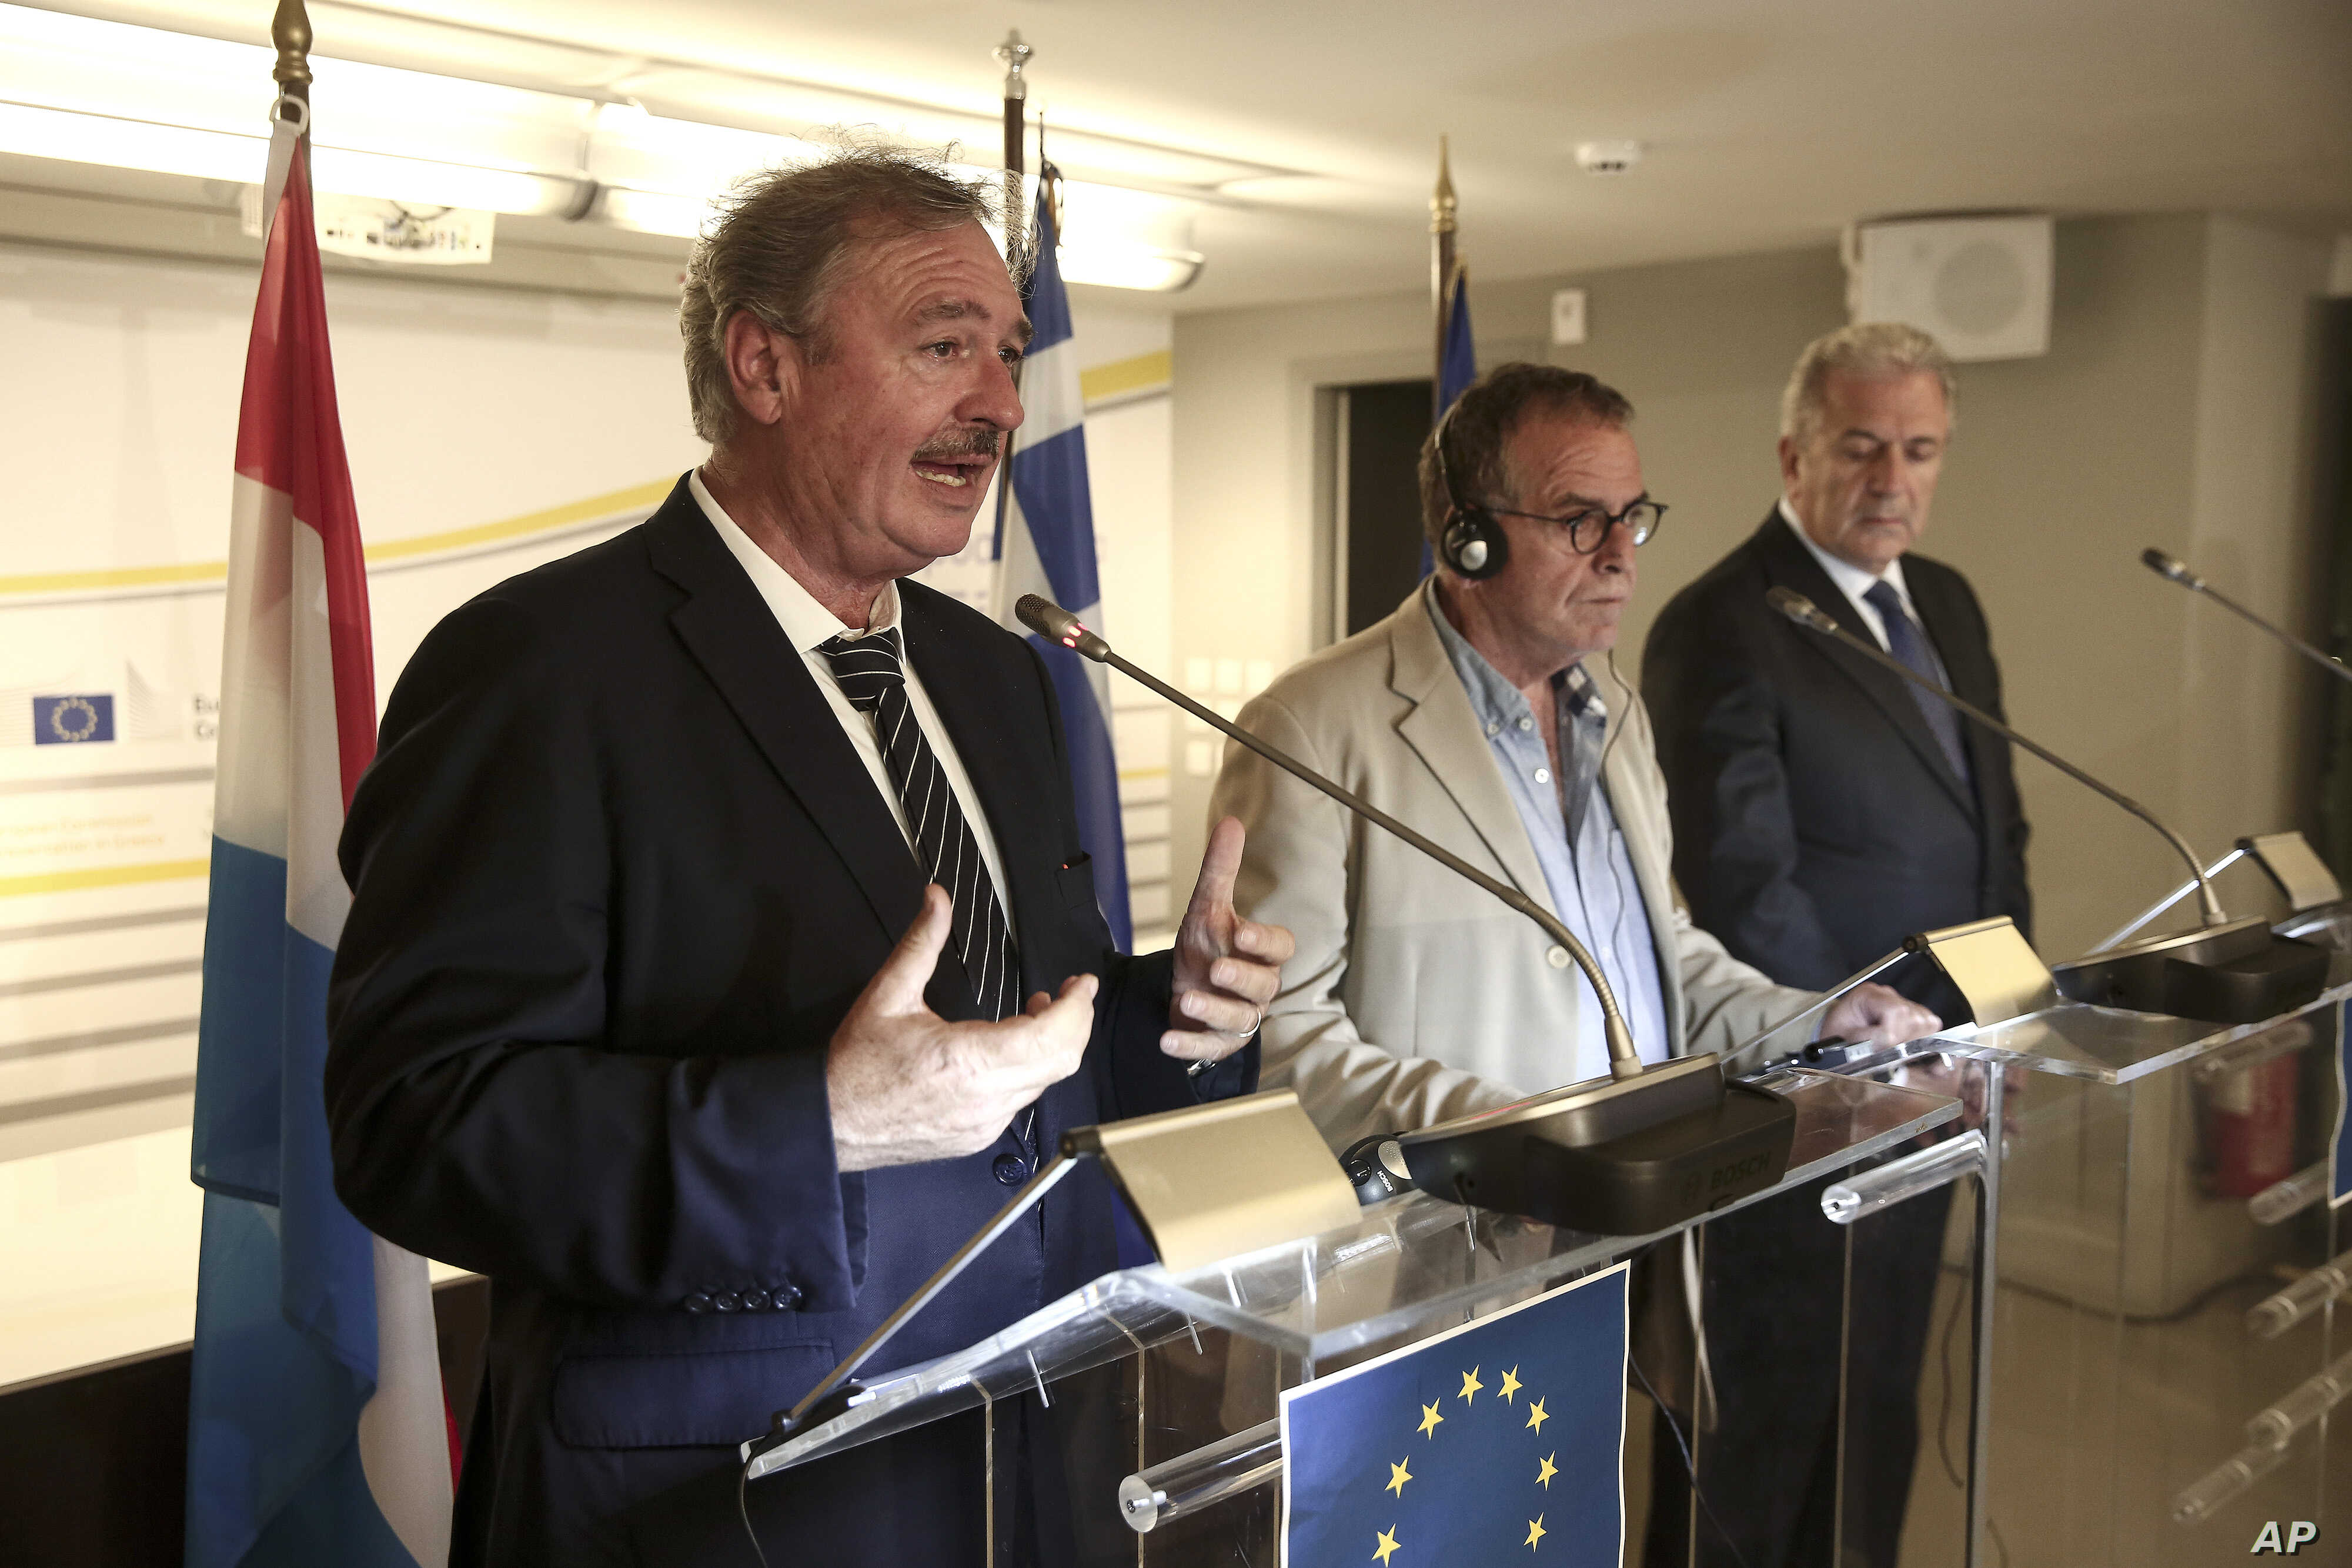 Luxembourg's Minister of Foreign and European Affairs Jean Asselborn, left, Greece's alternate Immigration Policy Minister Ioannis Mouzalas, and European Commissioner for Migration and Home Affairs Dimitris Avramopoulos during a news conference in At